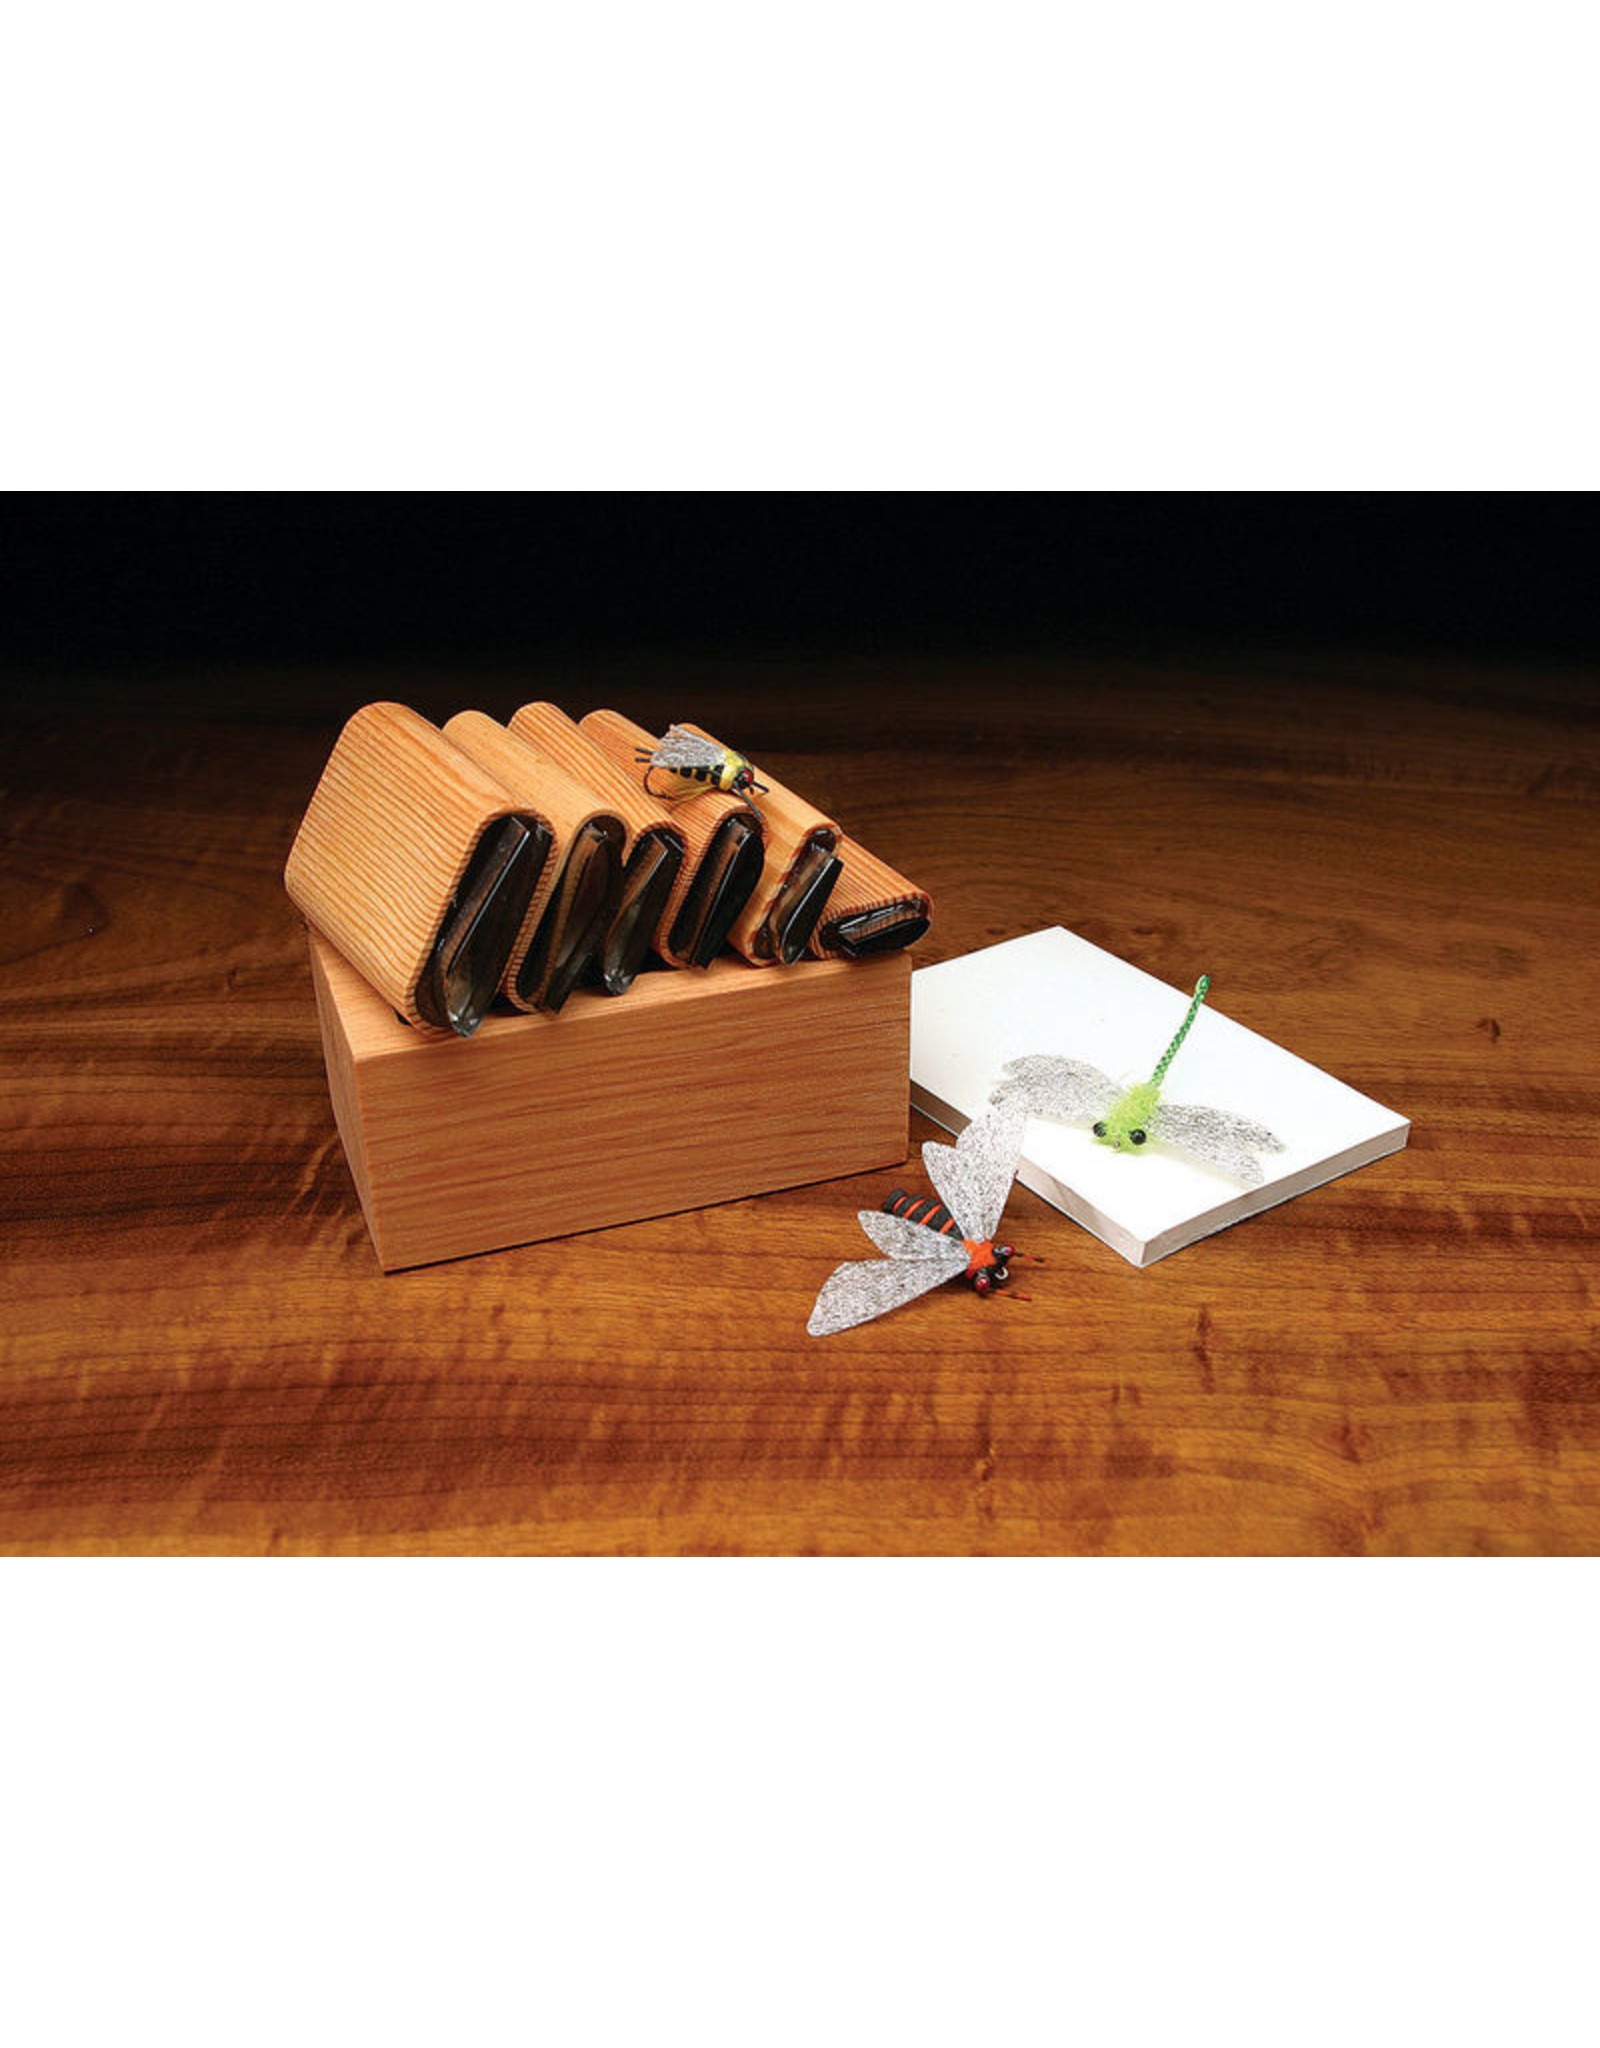 RIVER ROAD CREATIONS, INC Universal Bug Wing Cutters Complete Set